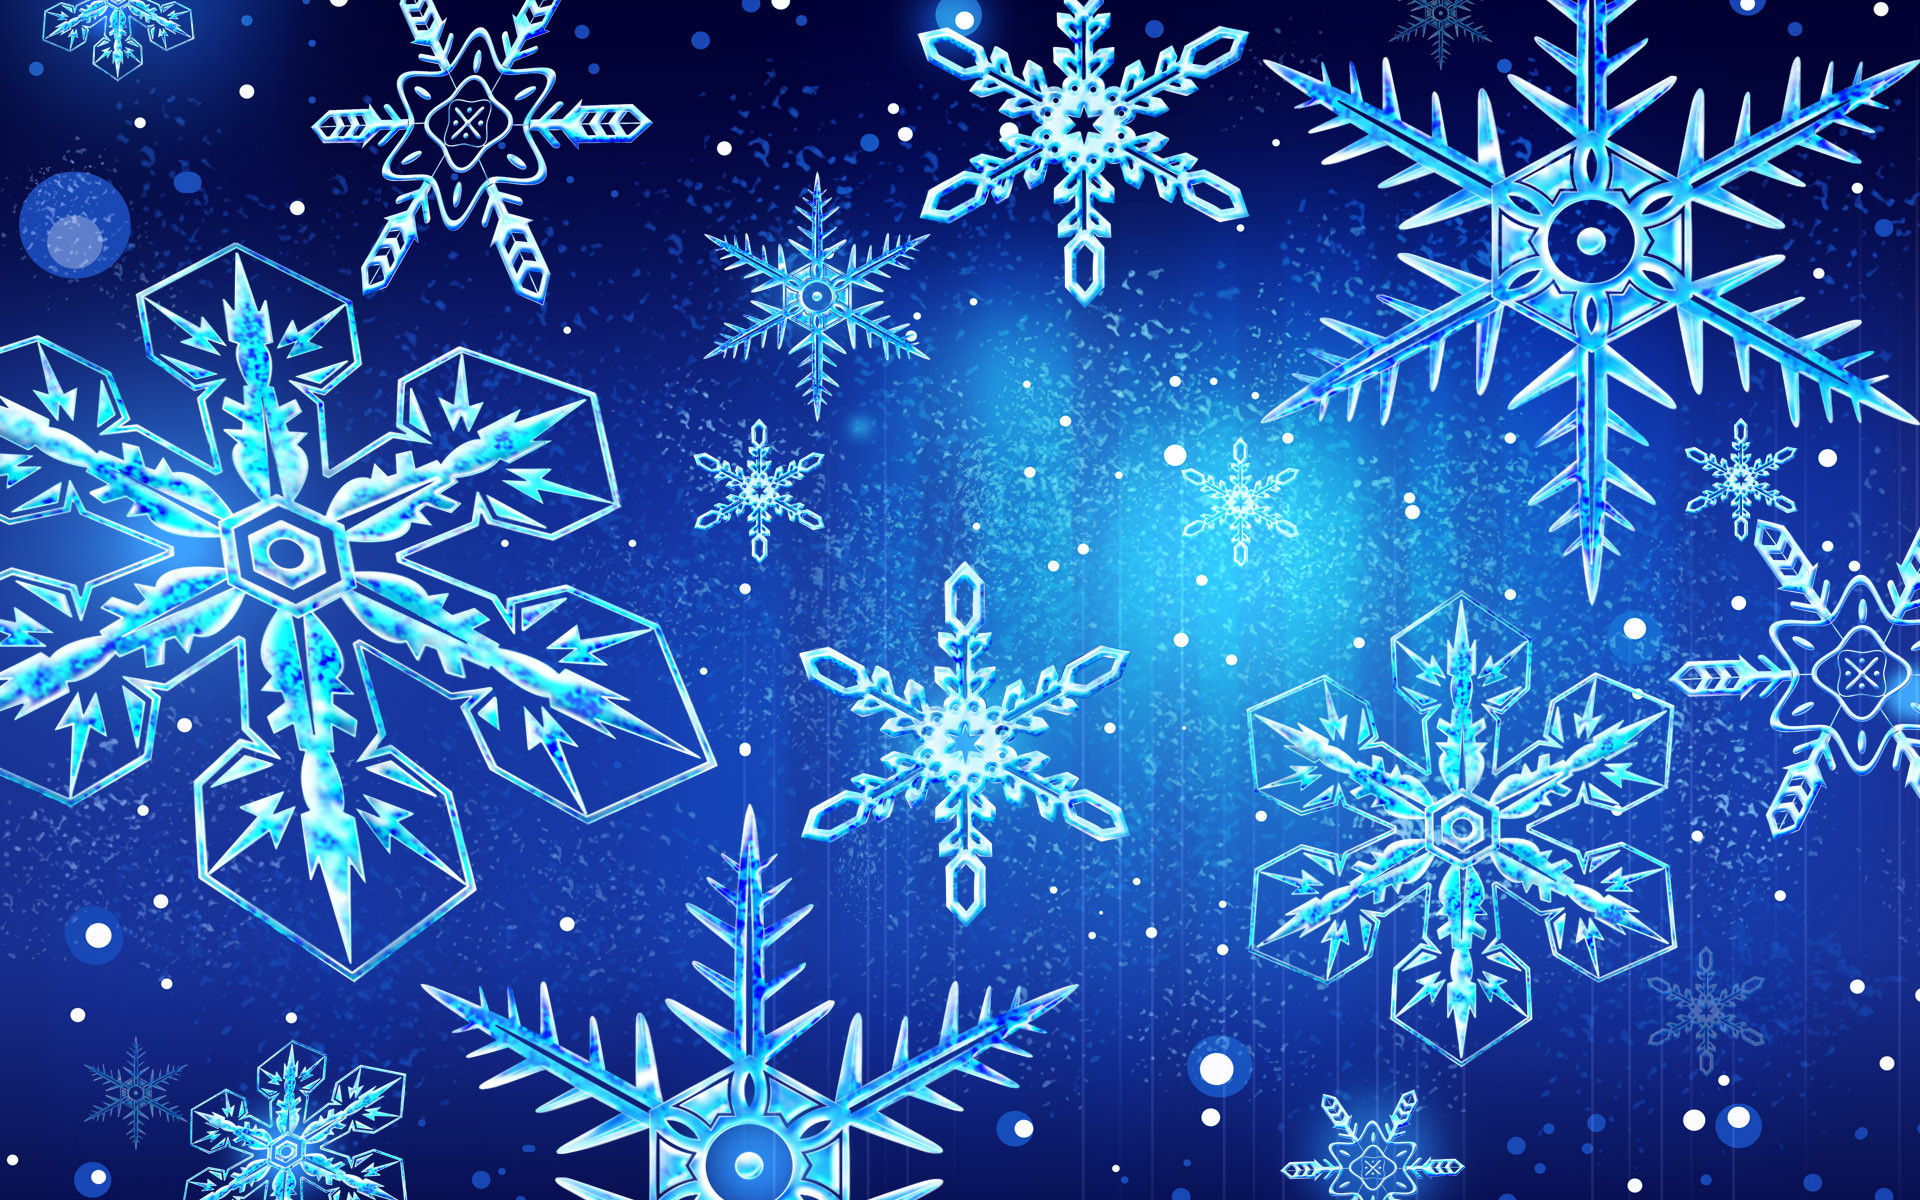 Snowflake Frozen 2D Wallpaper